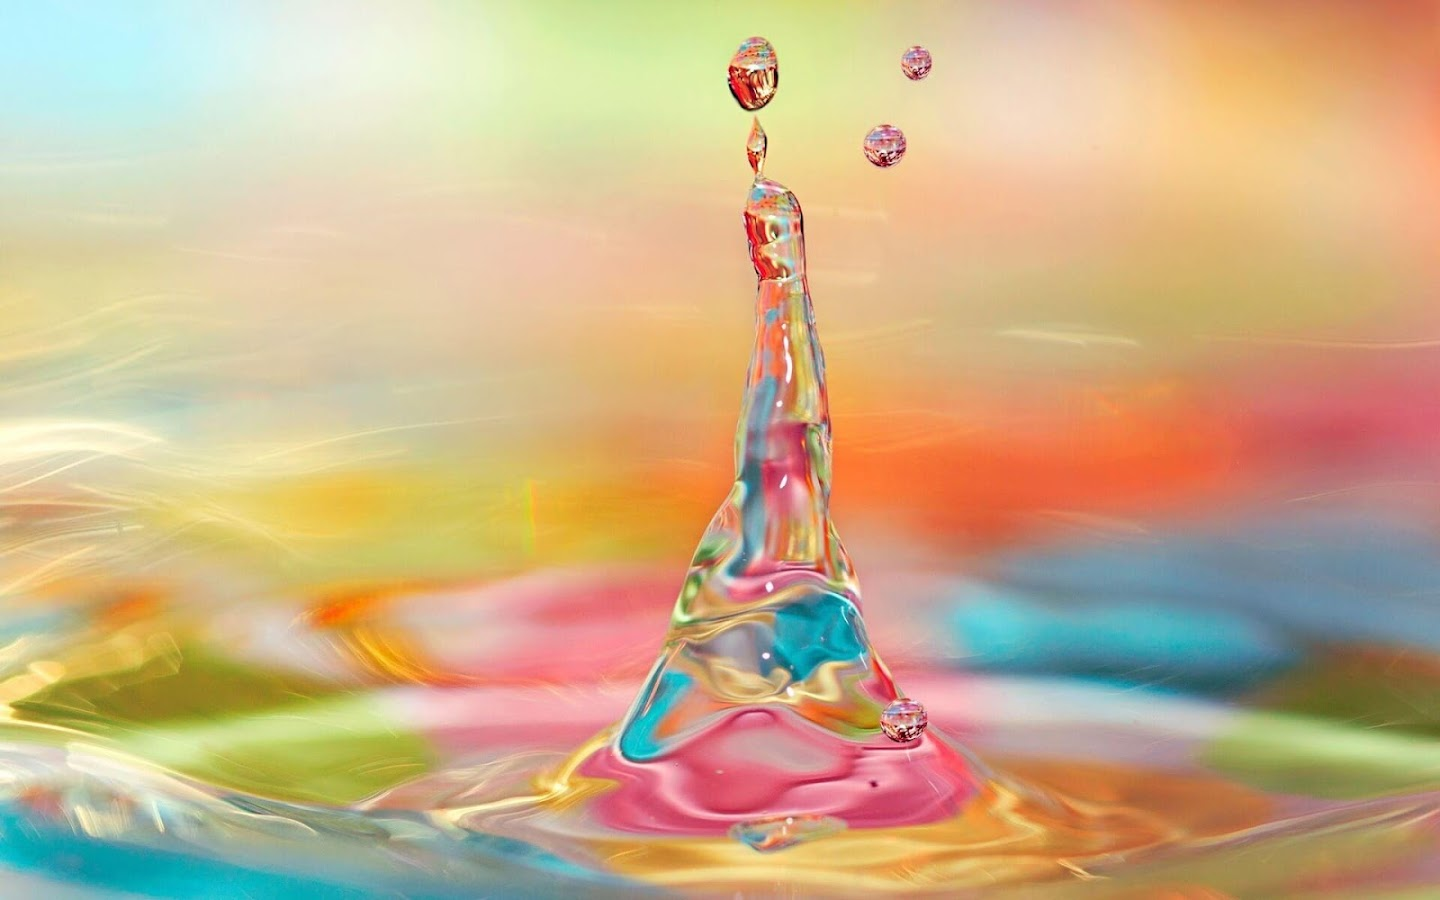 Free live water wallpaper android apps on google play free live water wallpaper screenshot voltagebd Choice Image